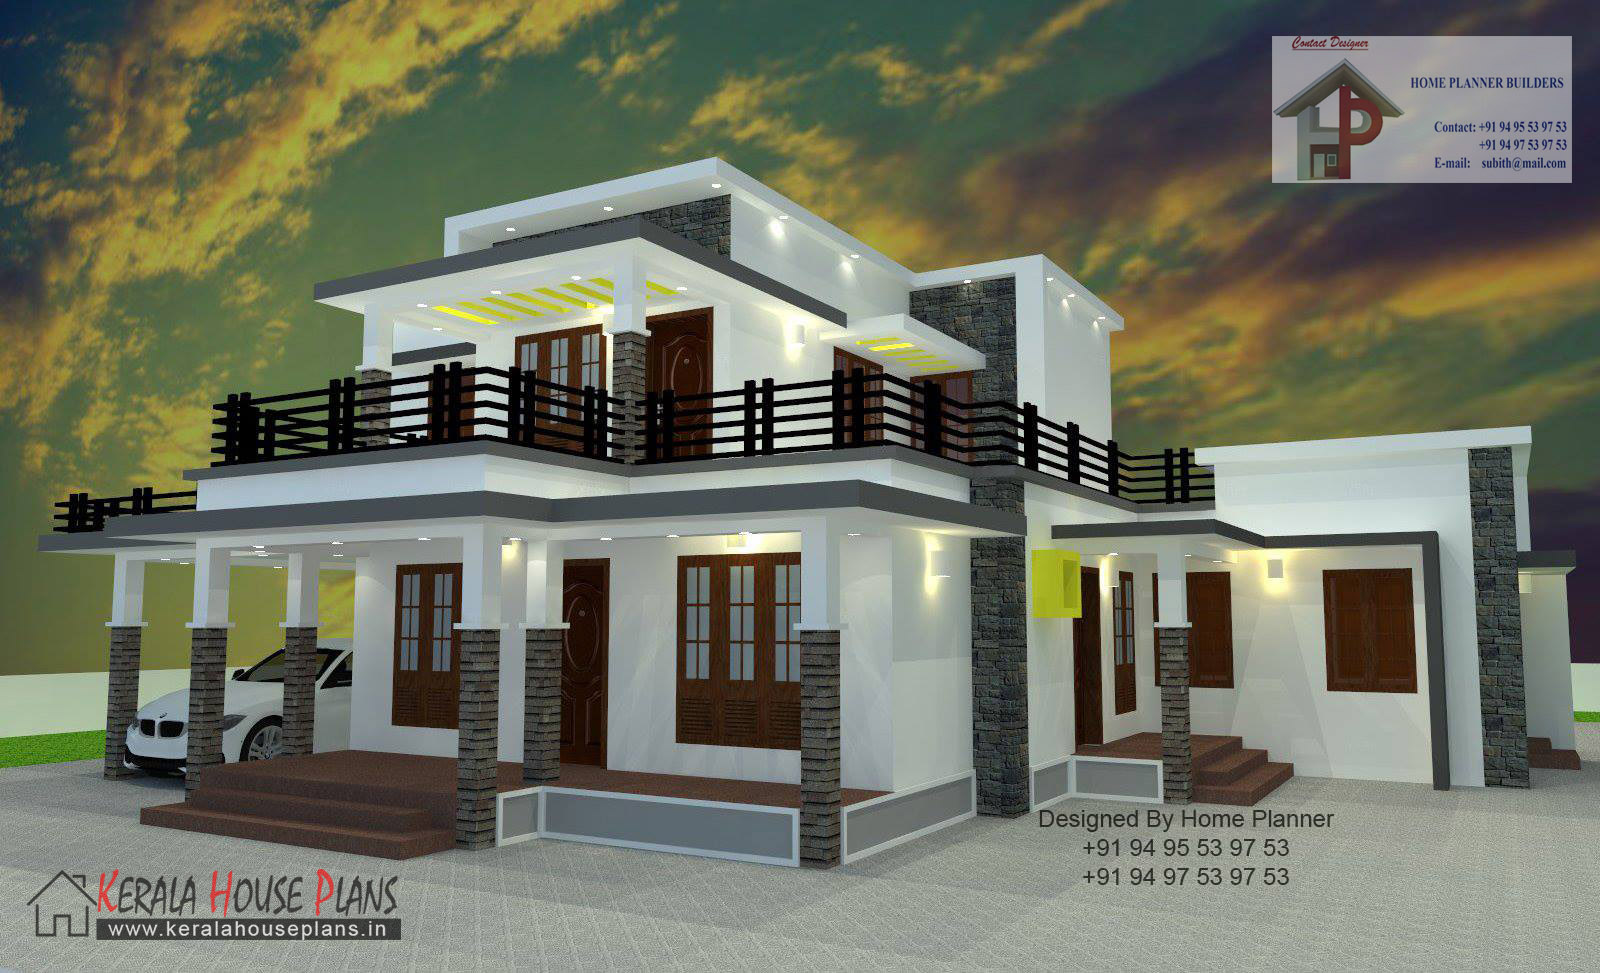 2000 sqft box type house kerala house plans designs - Home design and plans ...